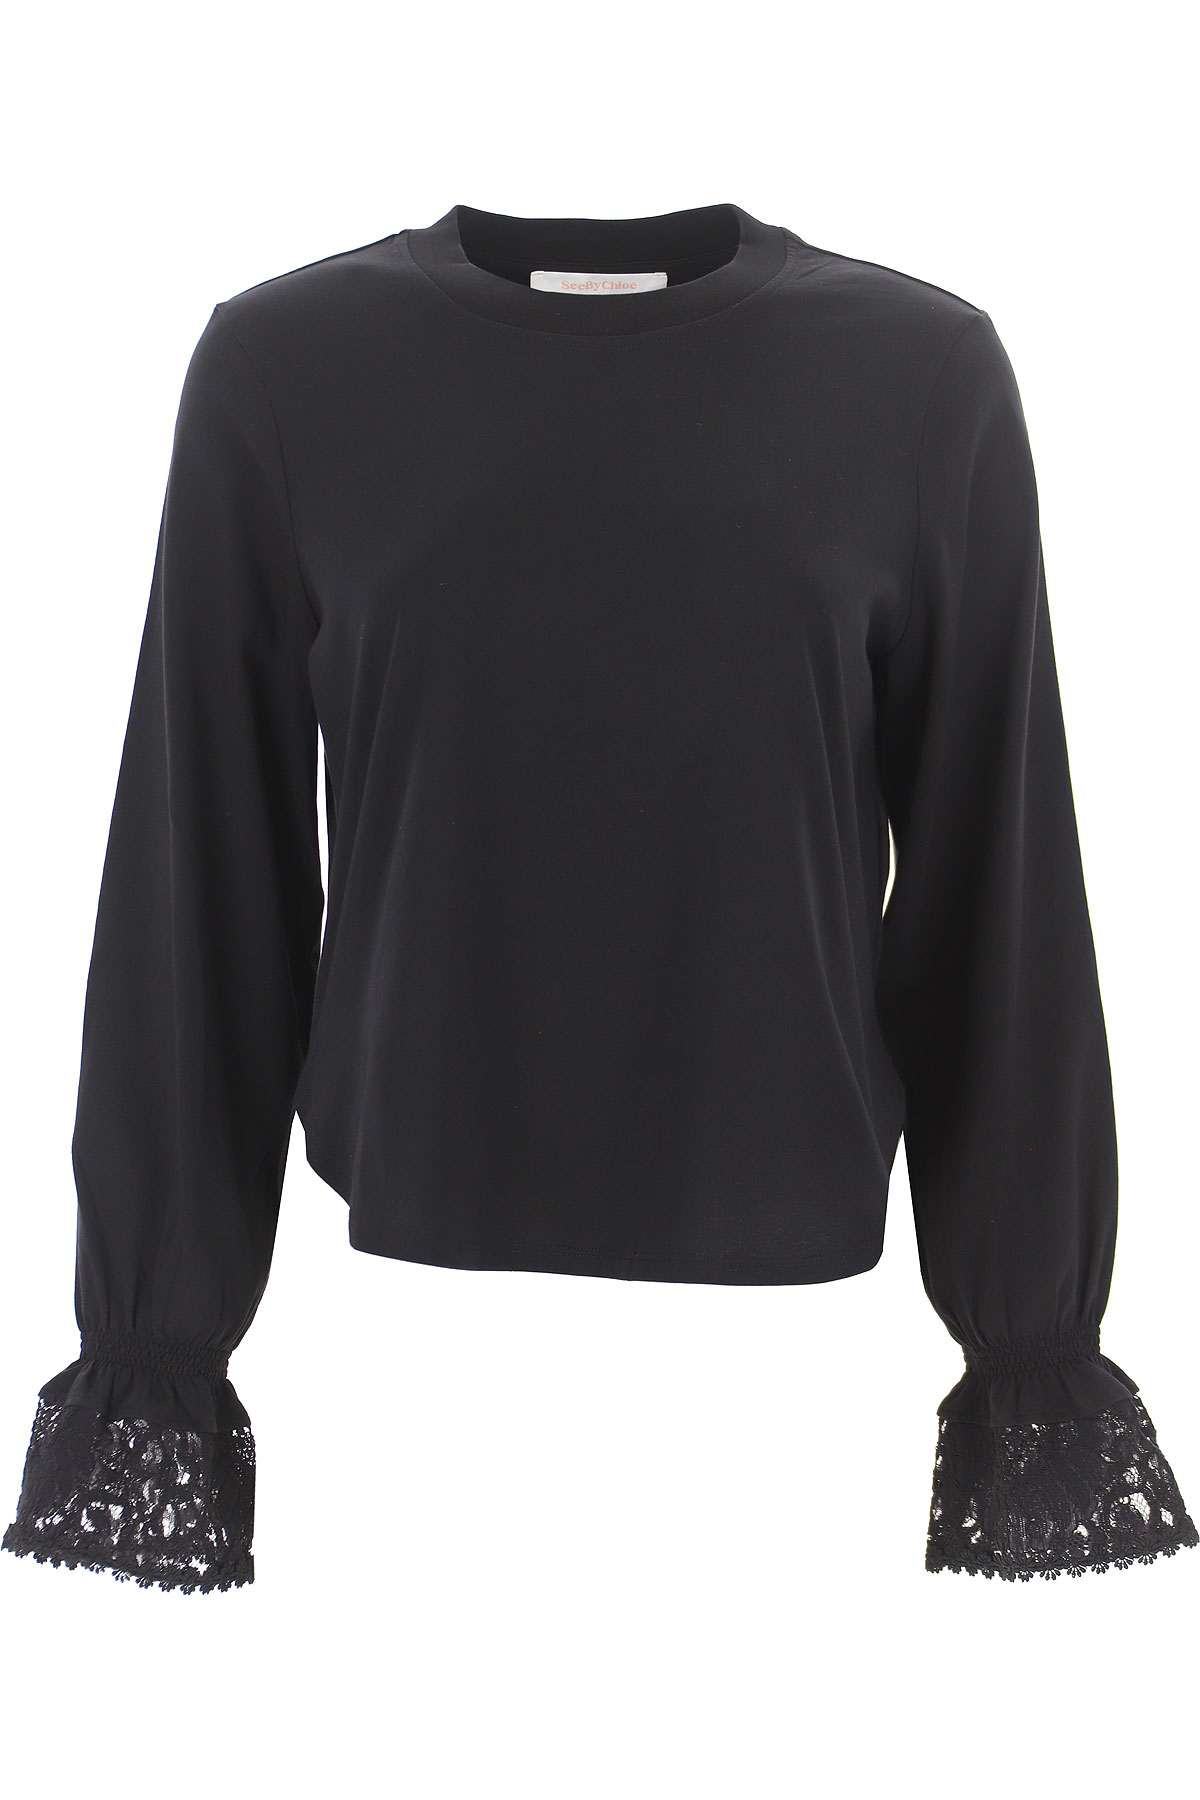 See By Chloe T-Shirt for Women On Sale, Black, Cotton, 2019, 2 4 6